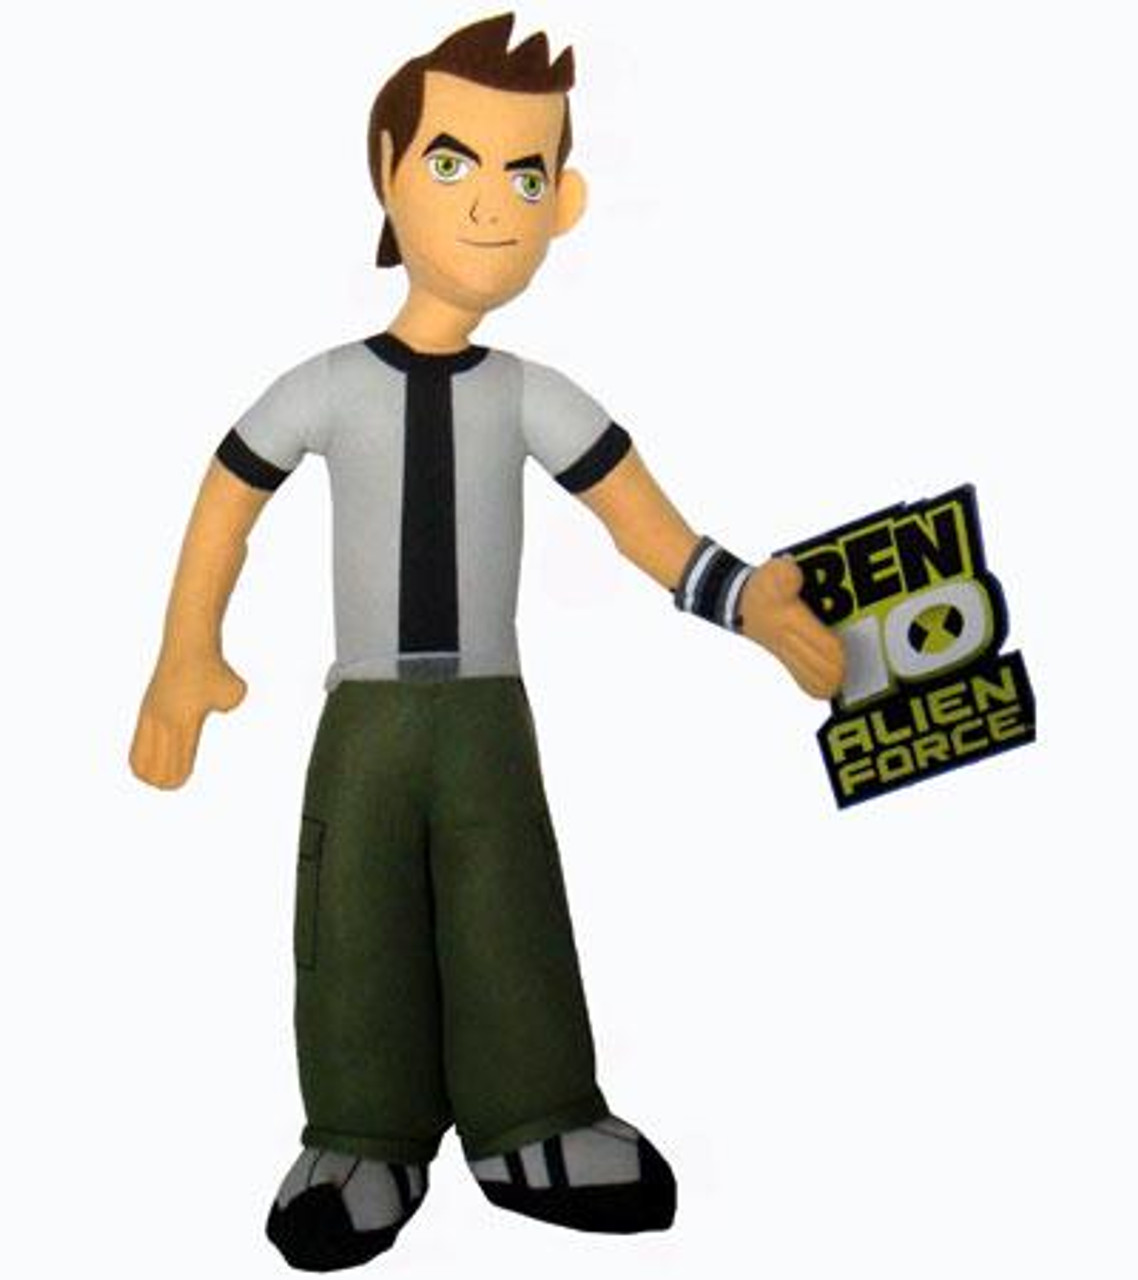 Alien Force Ben 10 13-Inch Plush Figure